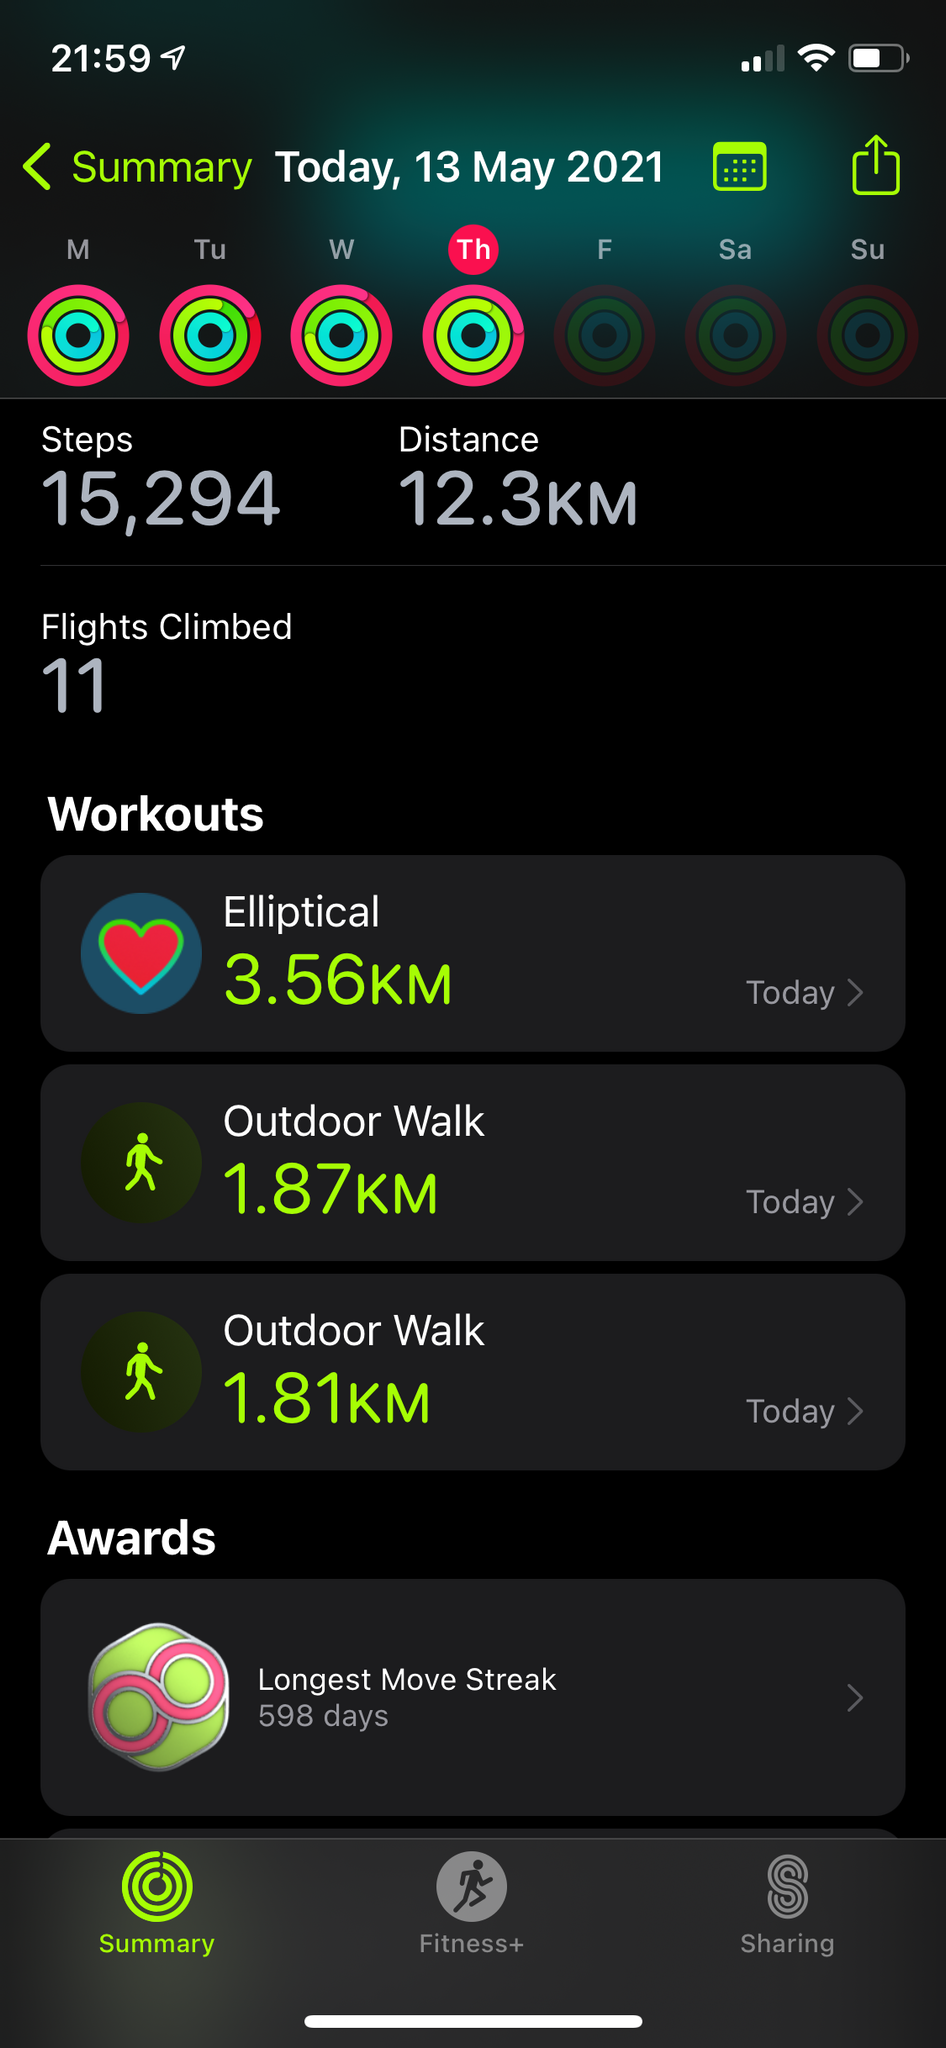 A screenshot from the iOS Fitness app showing 15,294 steps and a total distance of 12.3km. It includes 3.56km on the elliptical (which is undercounting what the elliptical itself says) plus two ~1.8km outdoor walks which were me walking from home to the station in the morning and back again in the evening.